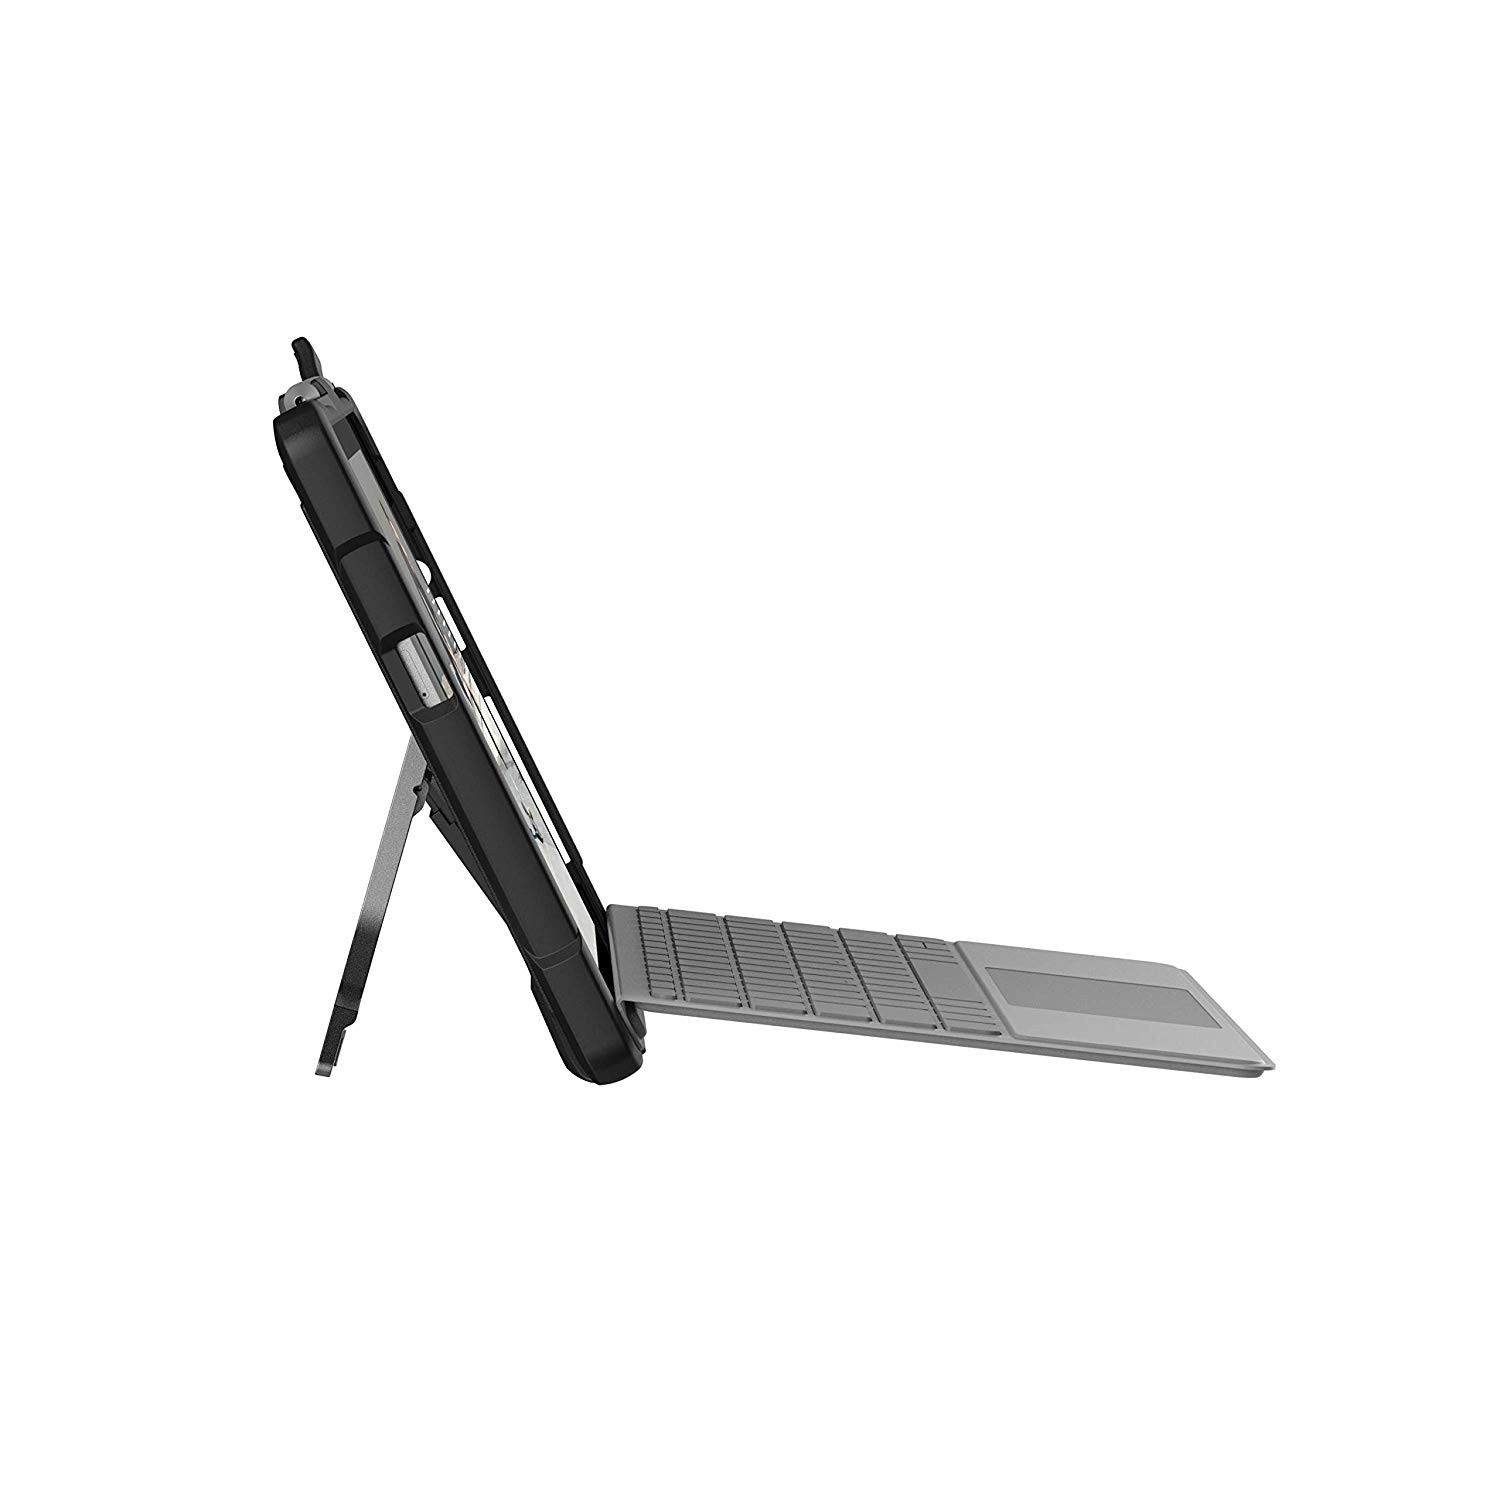 UAG Microsoft Surface Go Feather-Light Rugged Aluminum Stand Military Drop Tested Case - Black, 321076114040